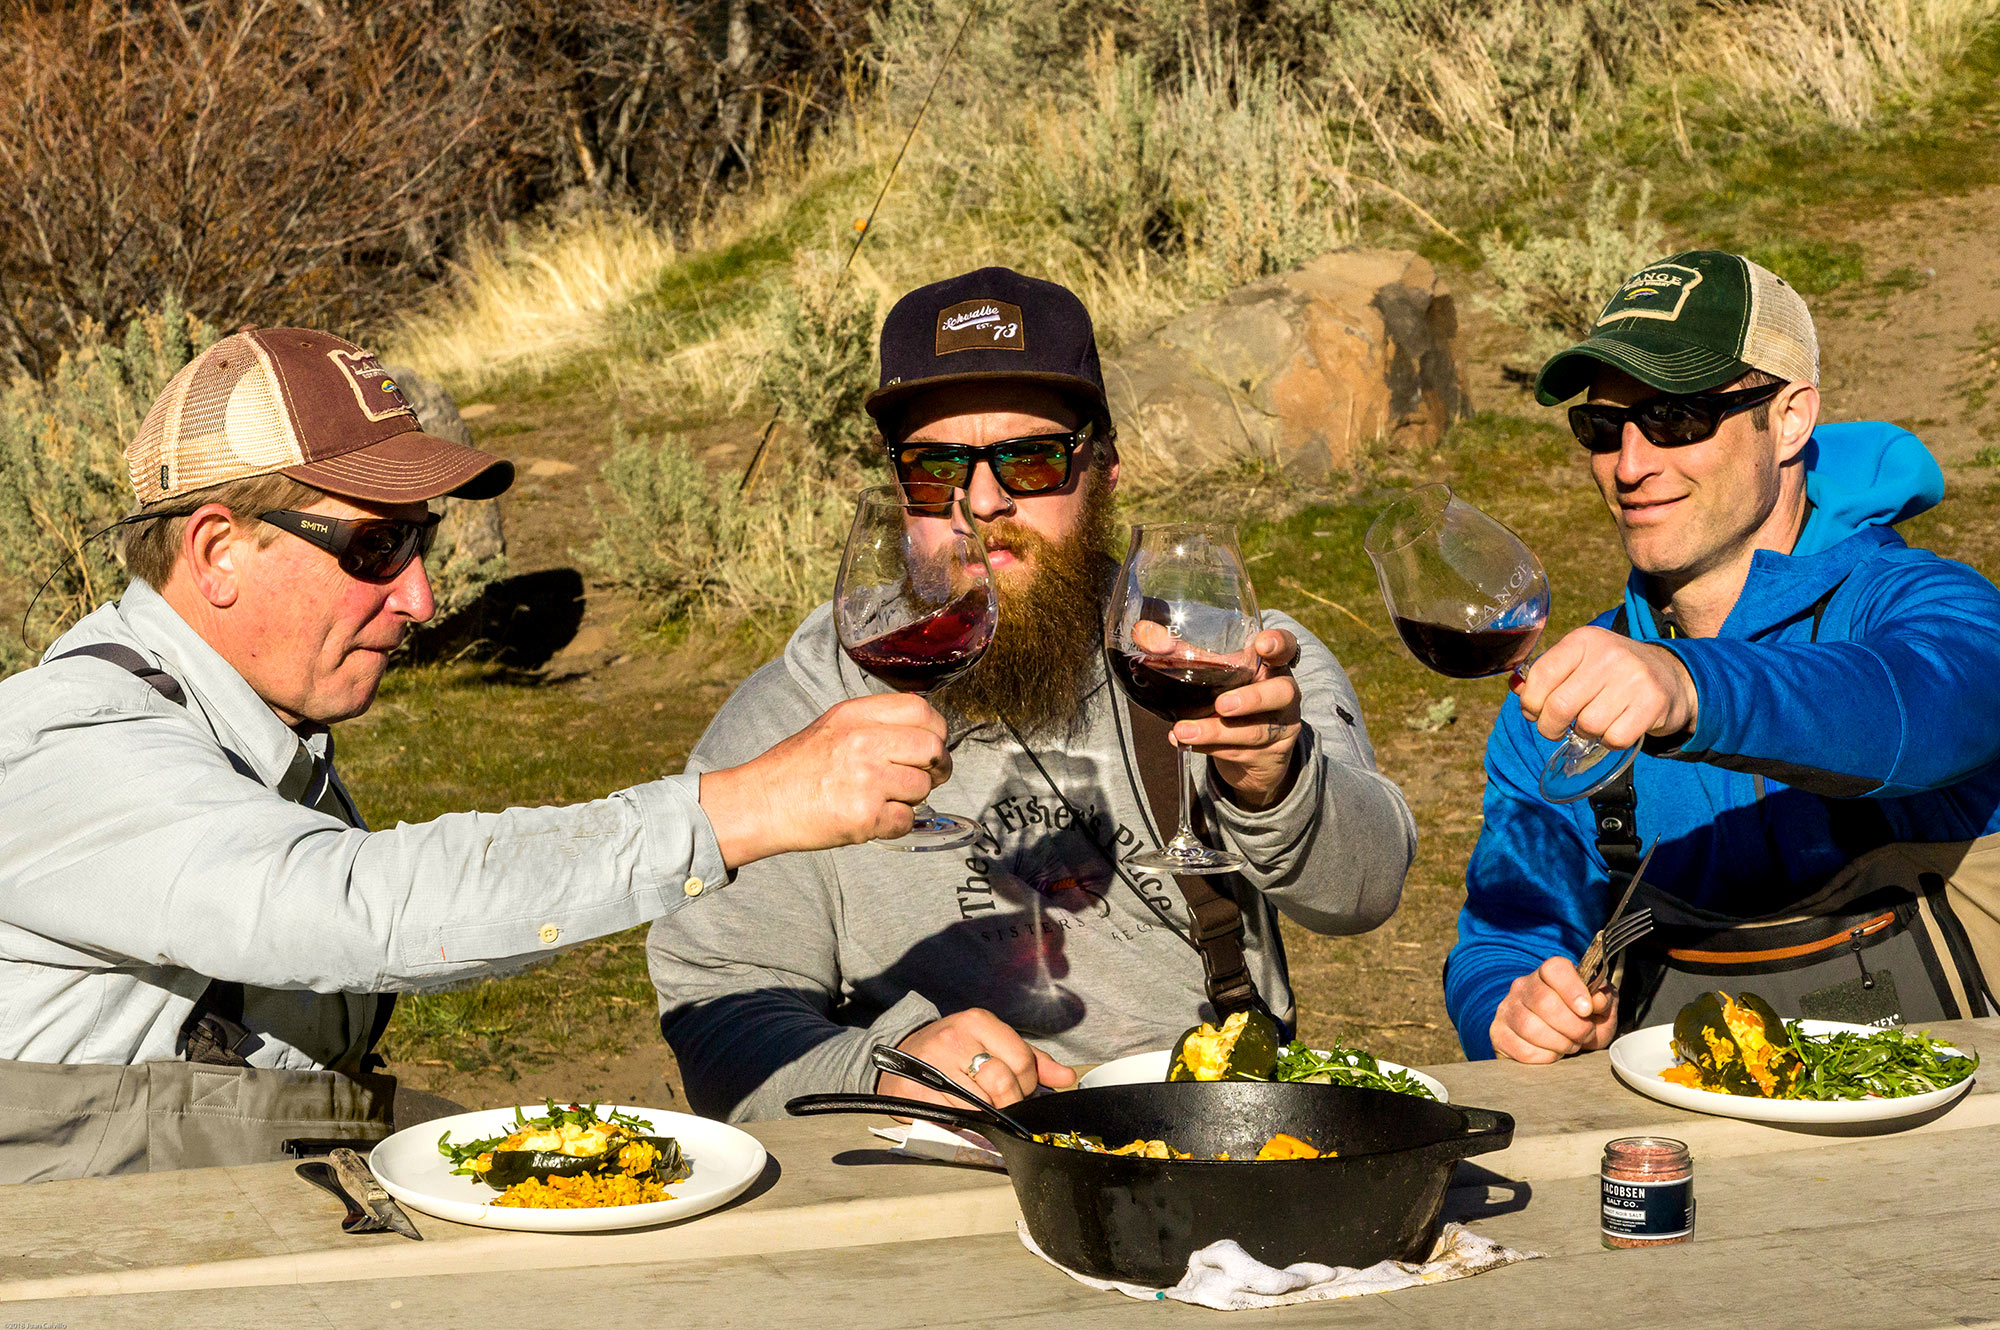 Enjoying the finishe meal alongside the Deschutes River